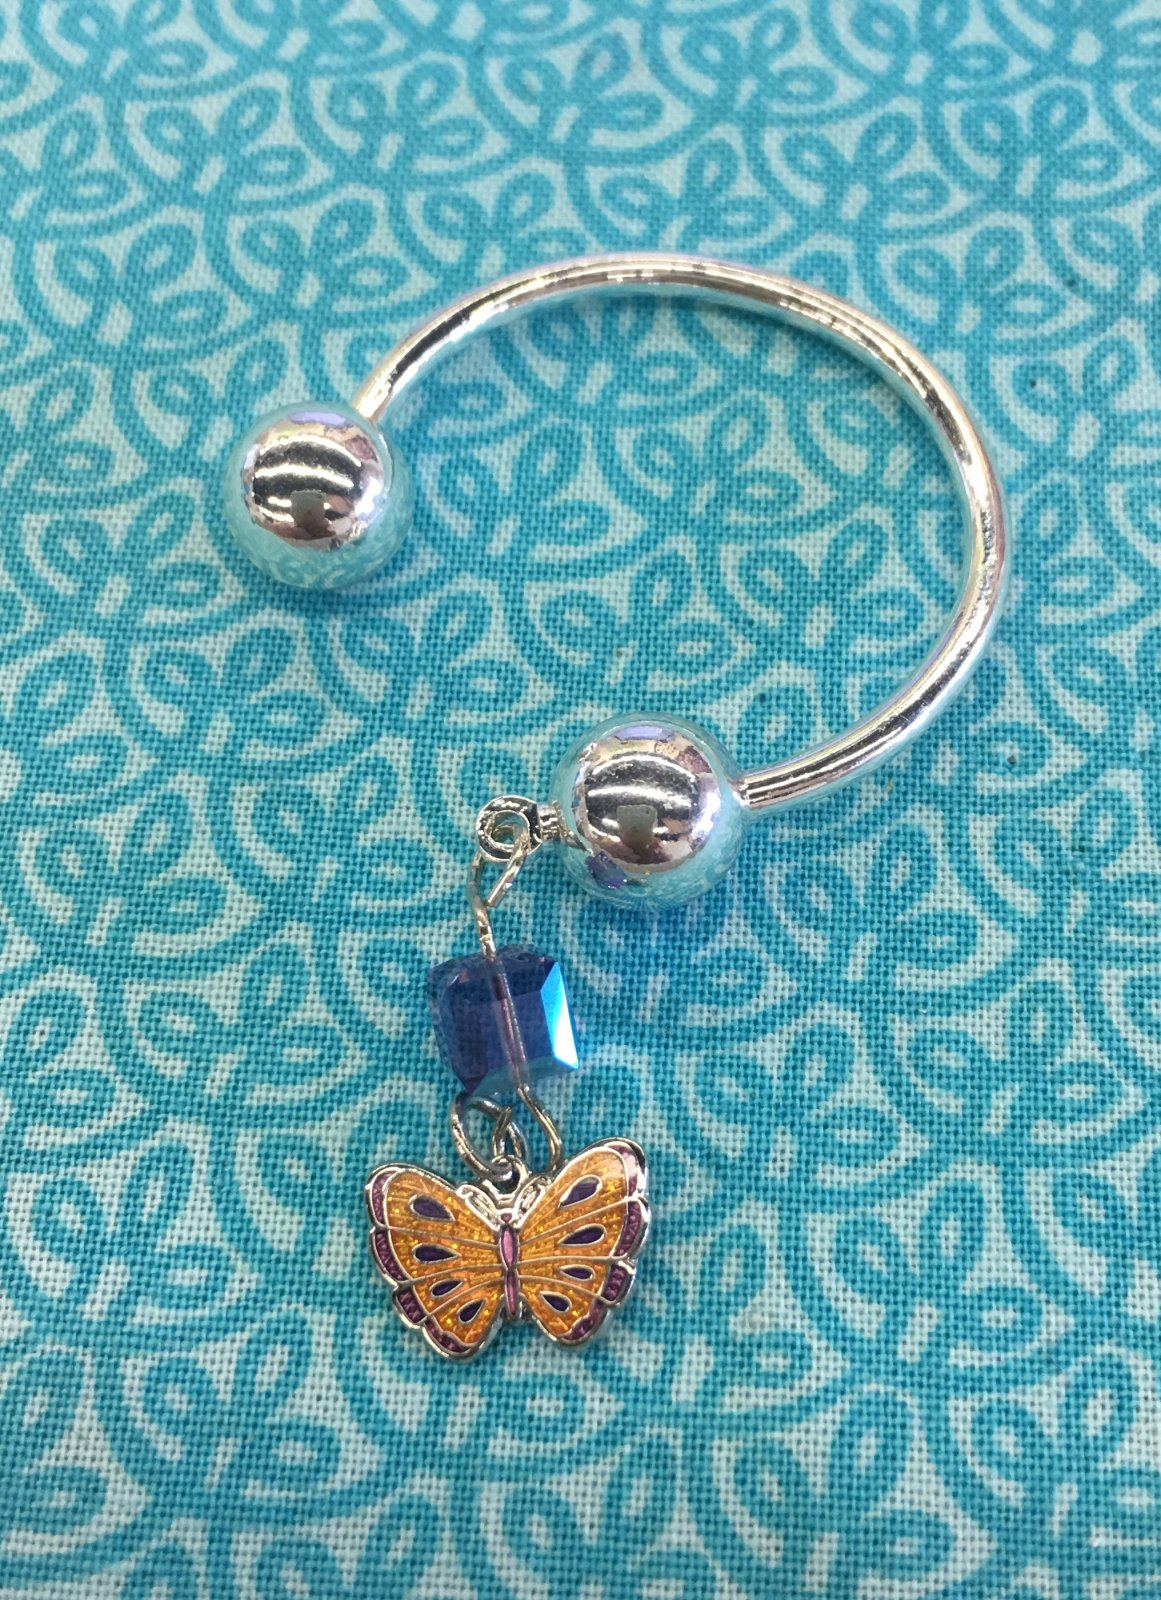 Butterfly Key Ring with Ball Ends